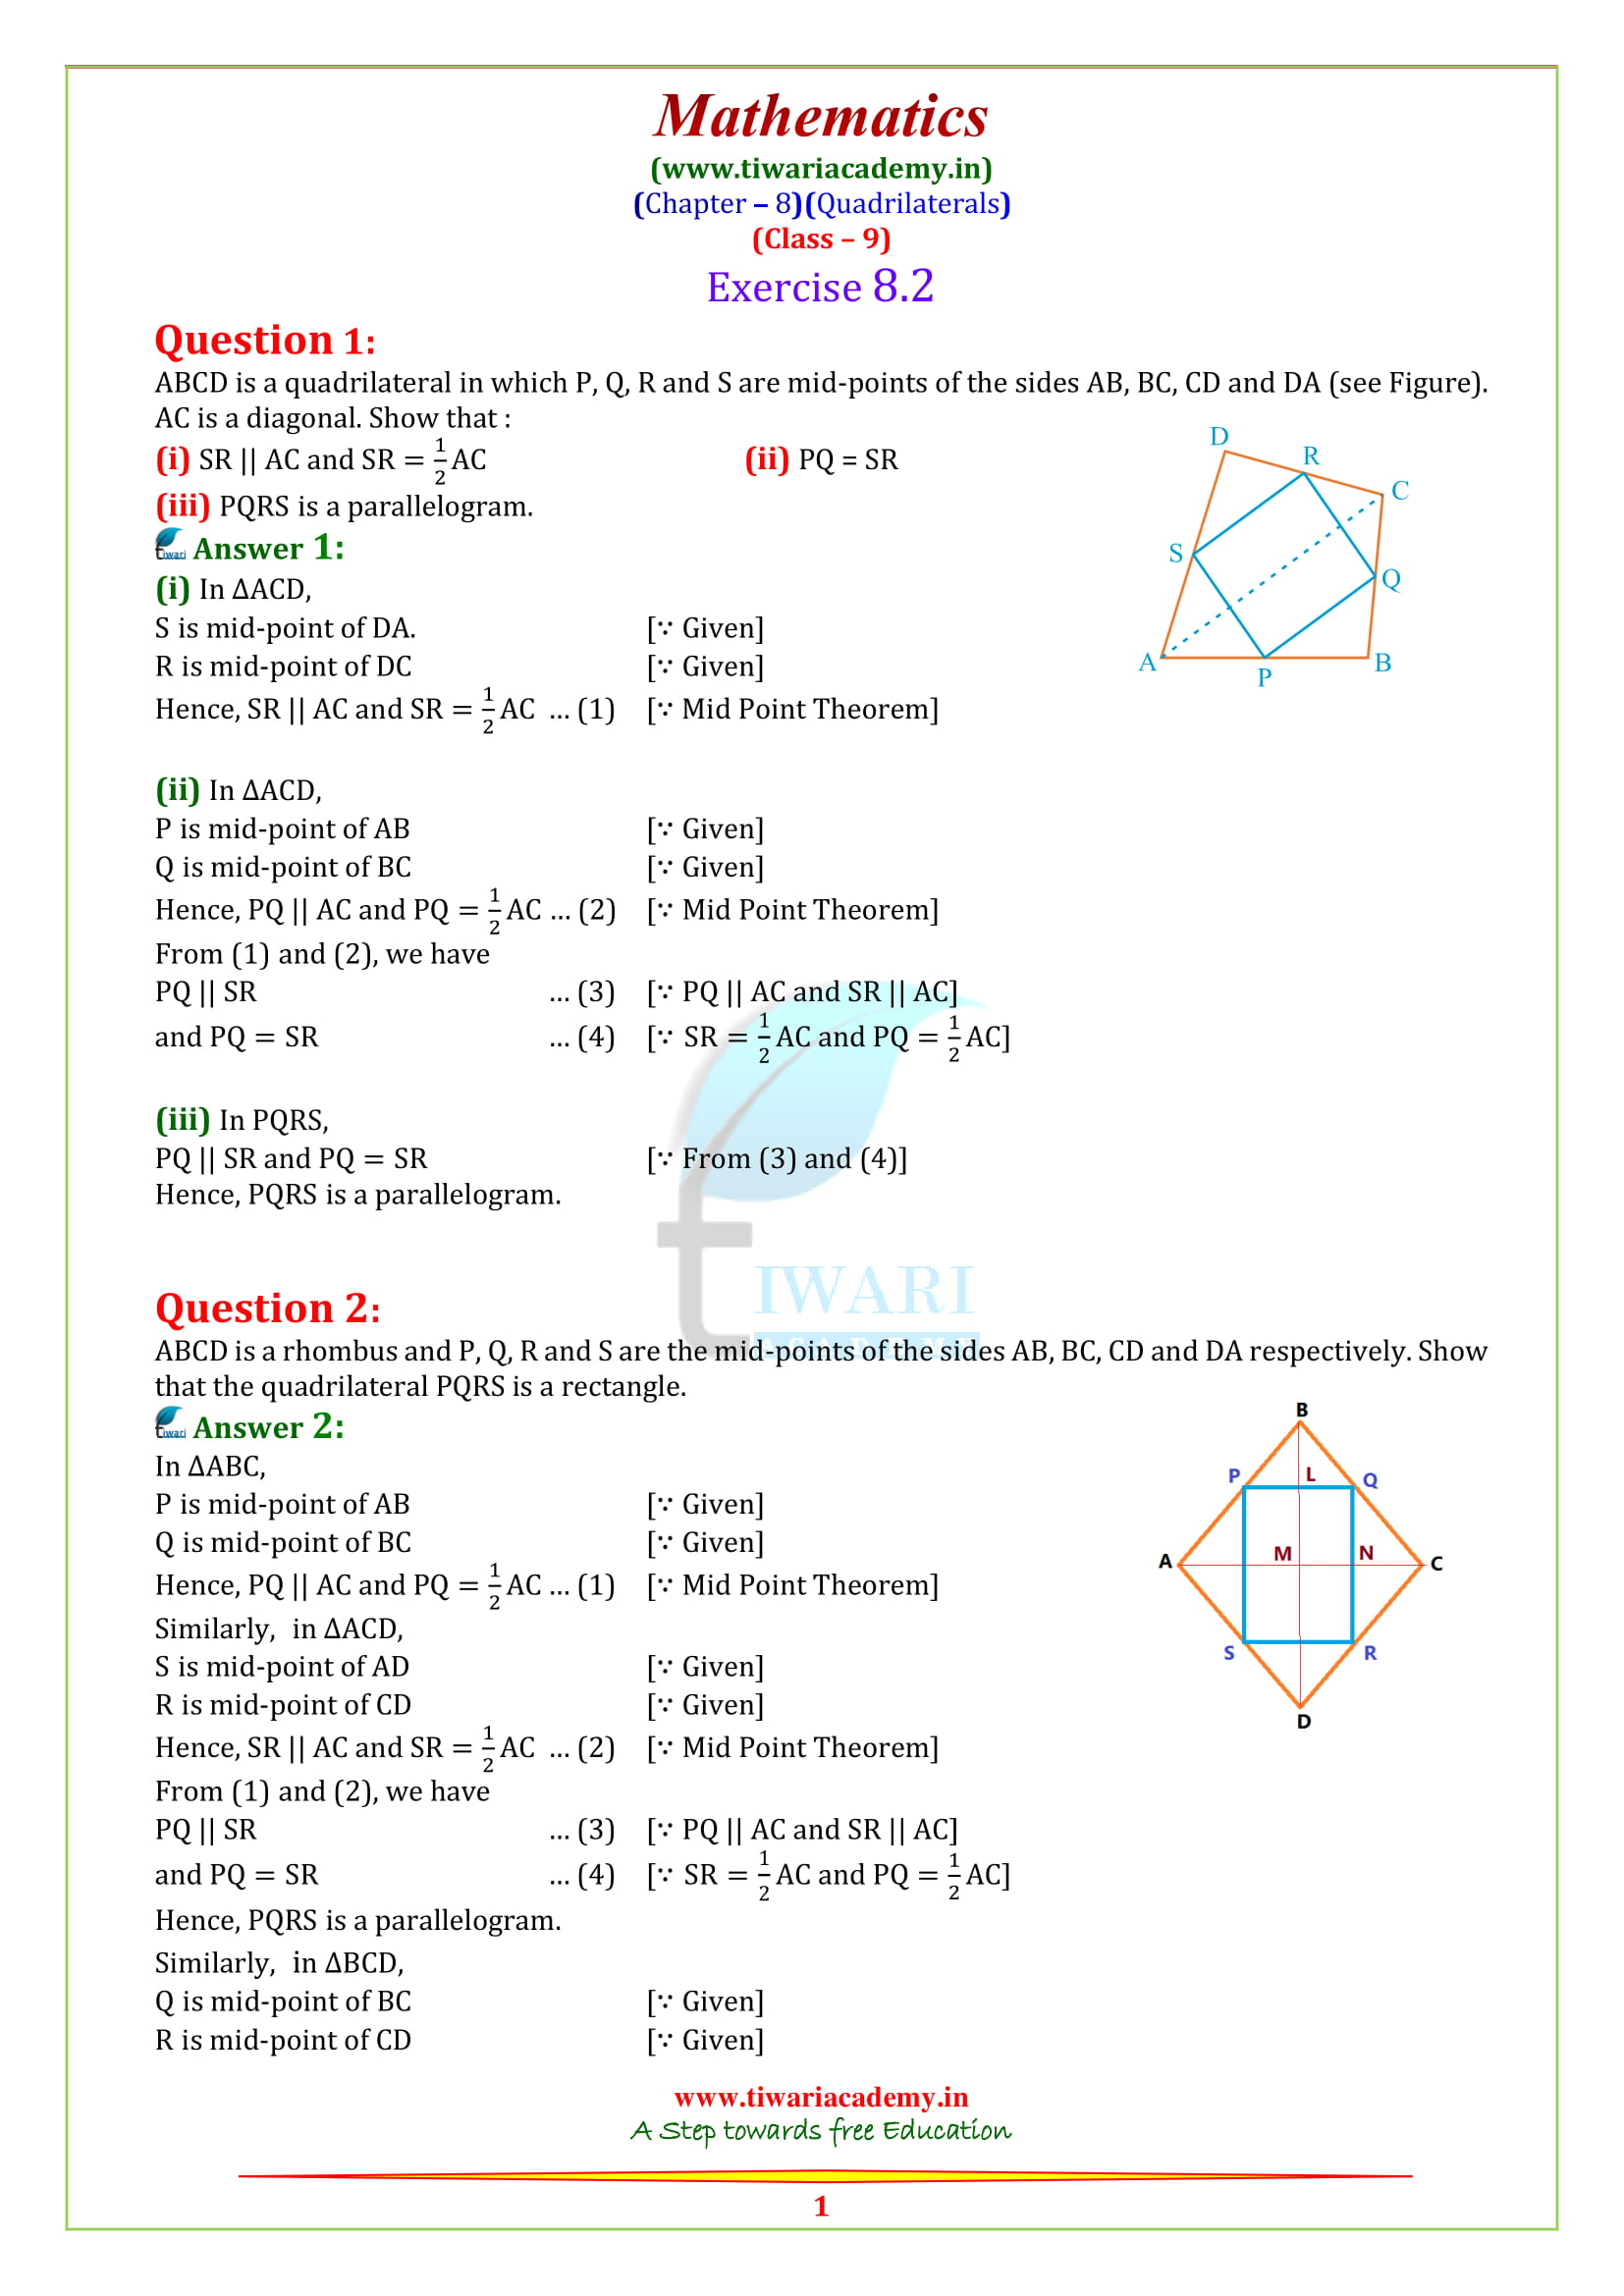 9 Maths exercise 8.2 sols in english medium